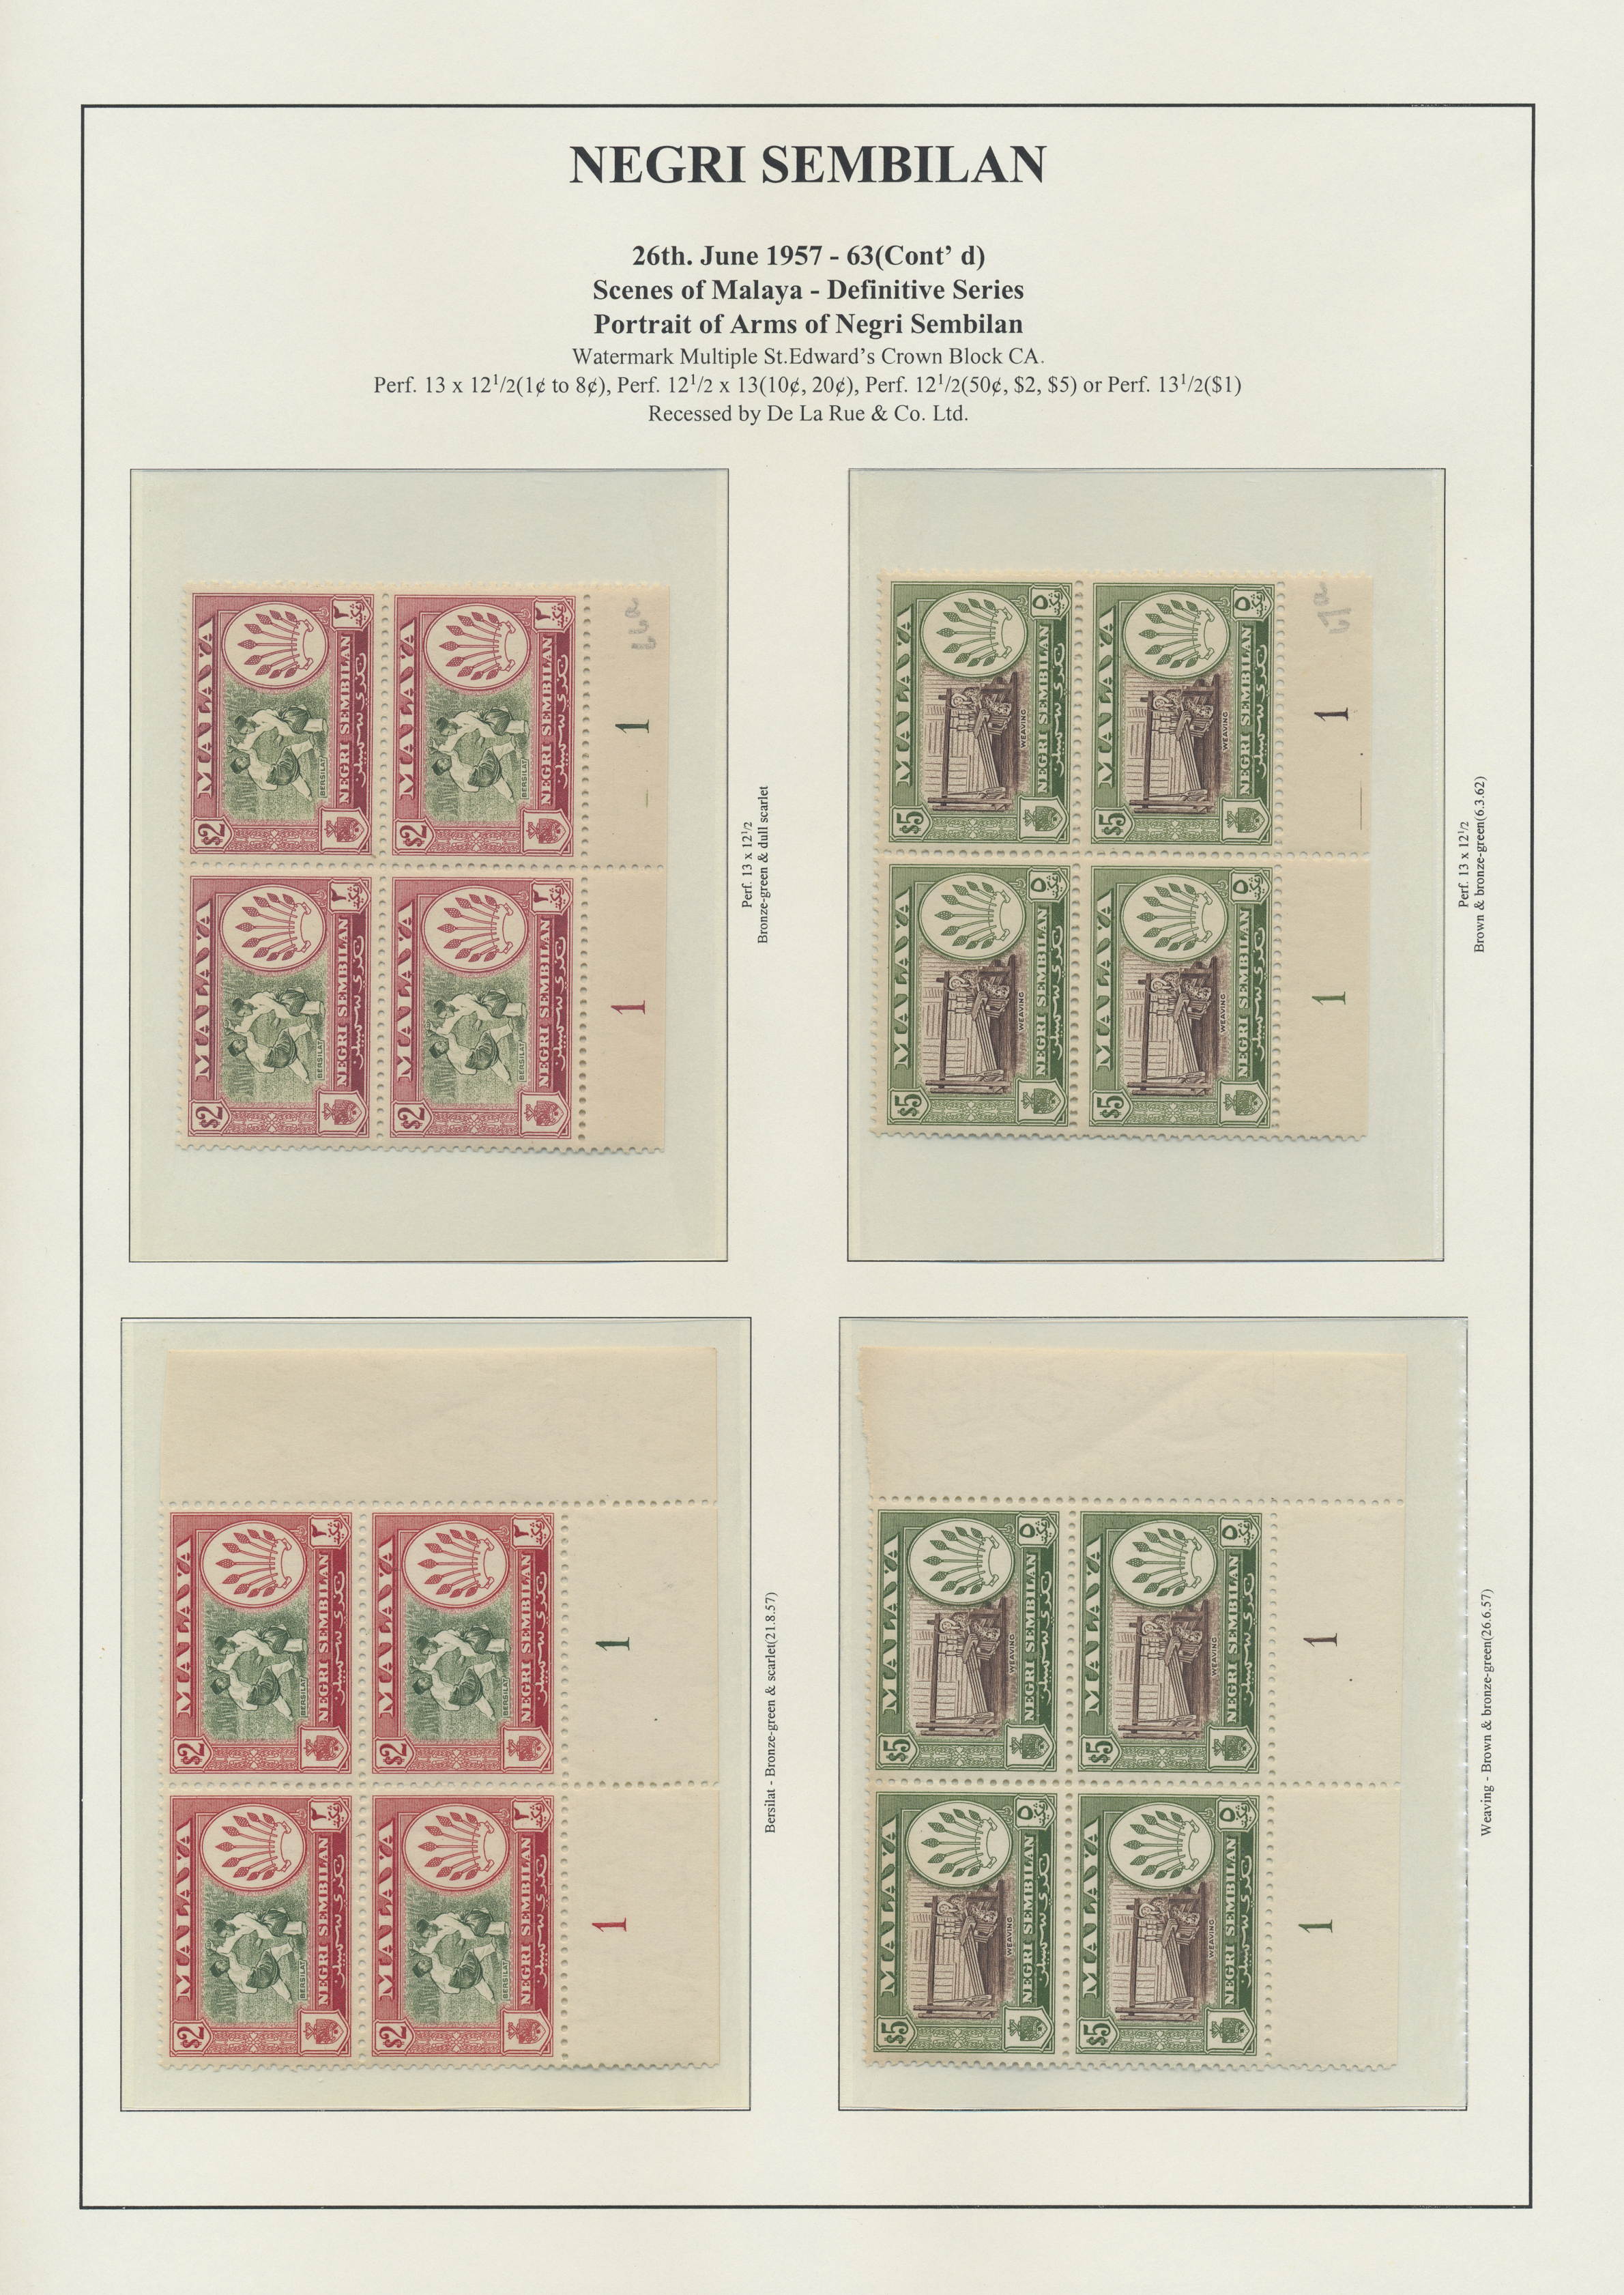 Lot 34571 - Malaiische Staaten - Negri Sembilan  -  Auktionshaus Christoph Gärtner GmbH & Co. KG Collections Germany,  Collections Supplement, Surprise boxes #39 Day 7